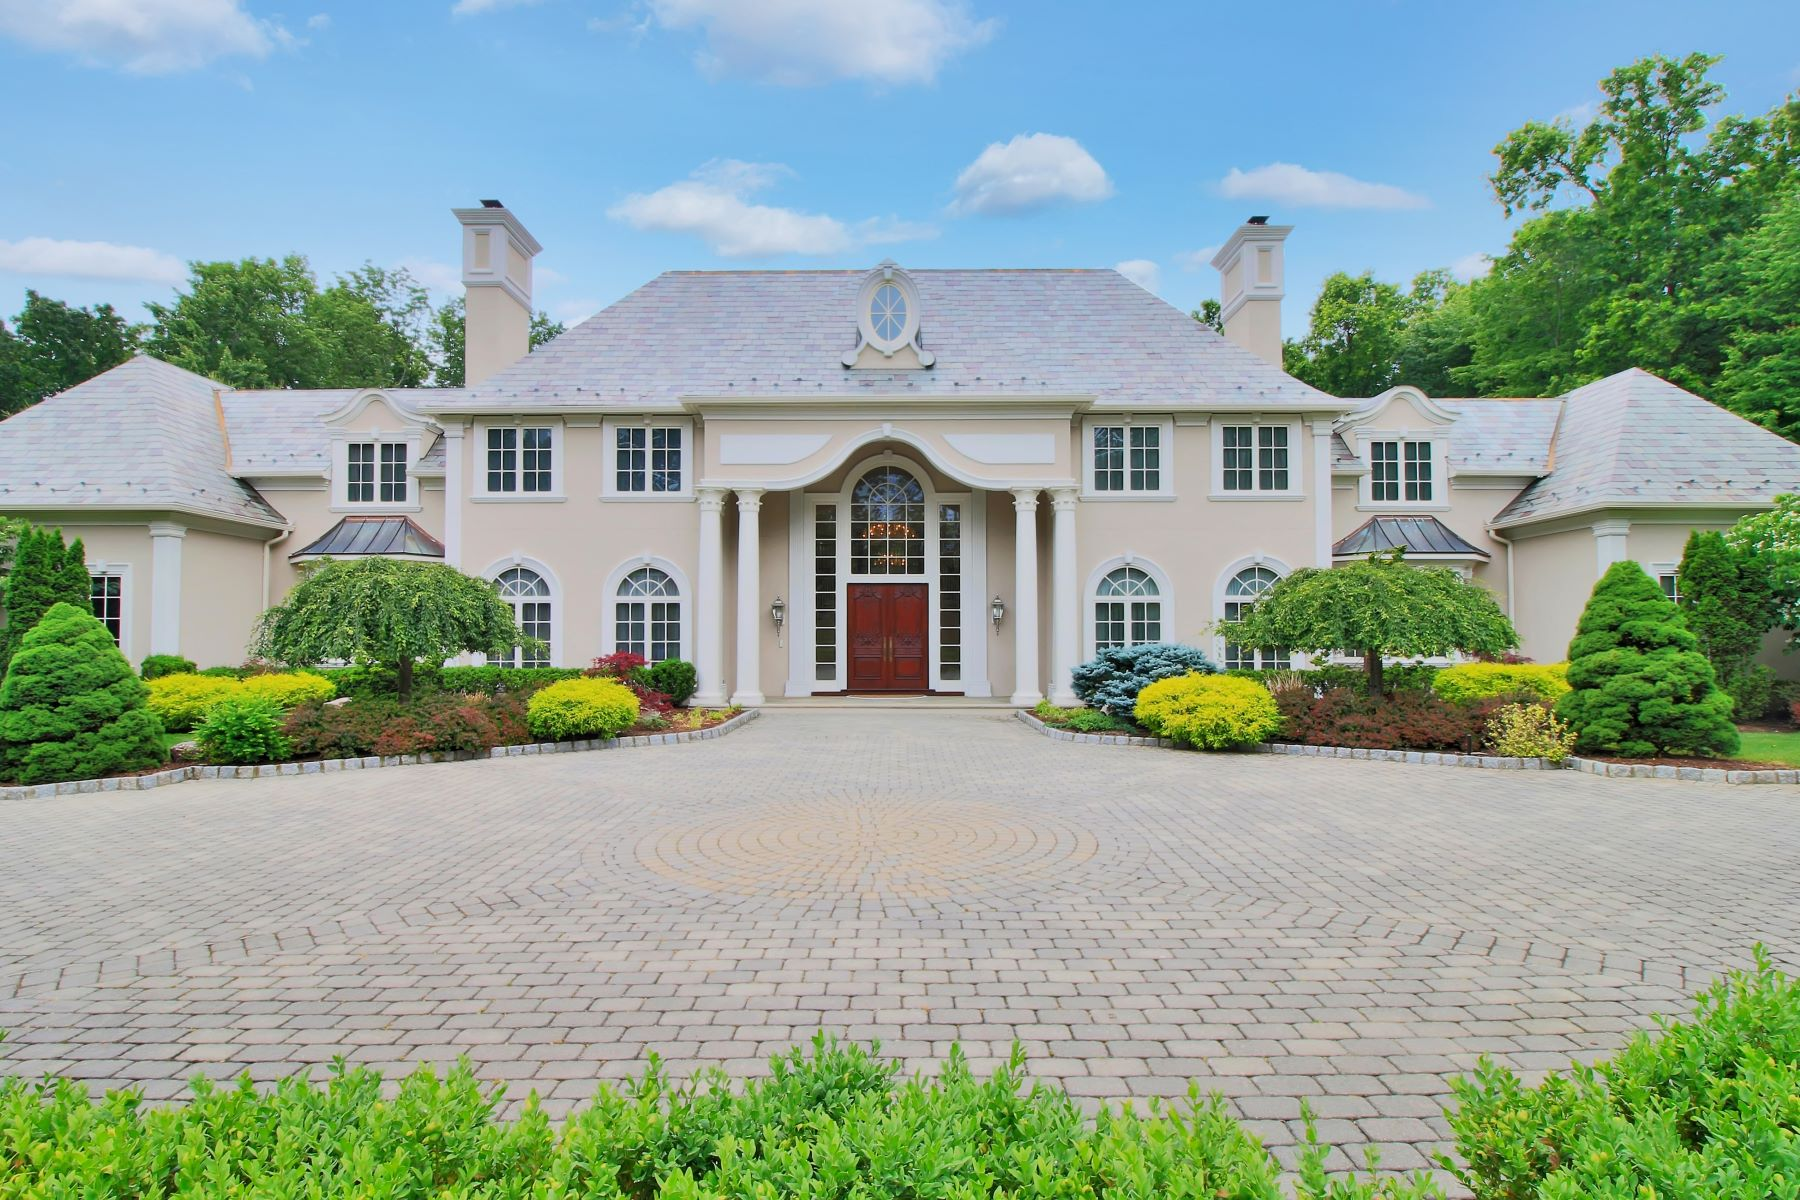 Maison unifamiliale pour l Vente à Breathtaking! 33 Cameron Road Saddle River, New Jersey 07458 États-Unis